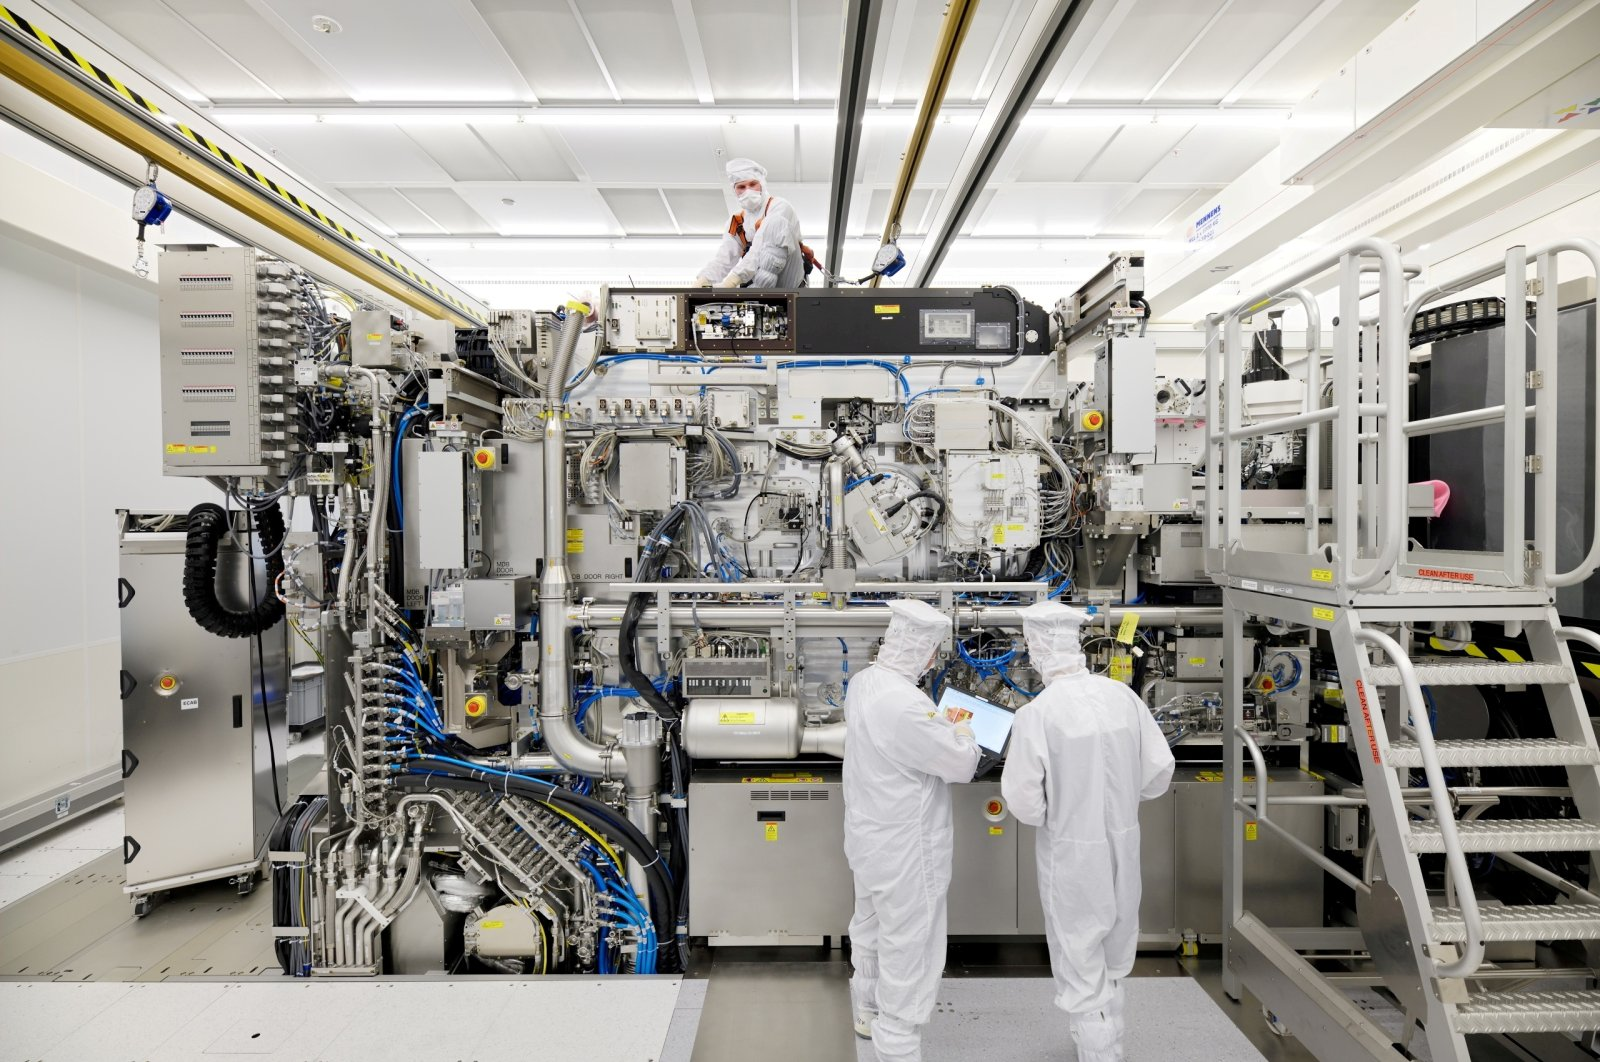 Employees are seen working on the final assembly of ASML's TWINSCAN NXE:3400B semiconductor lithography tool with its panels removed, in Veldhoven, Netherlands, April 4, 2019. (ASML via Reuters)